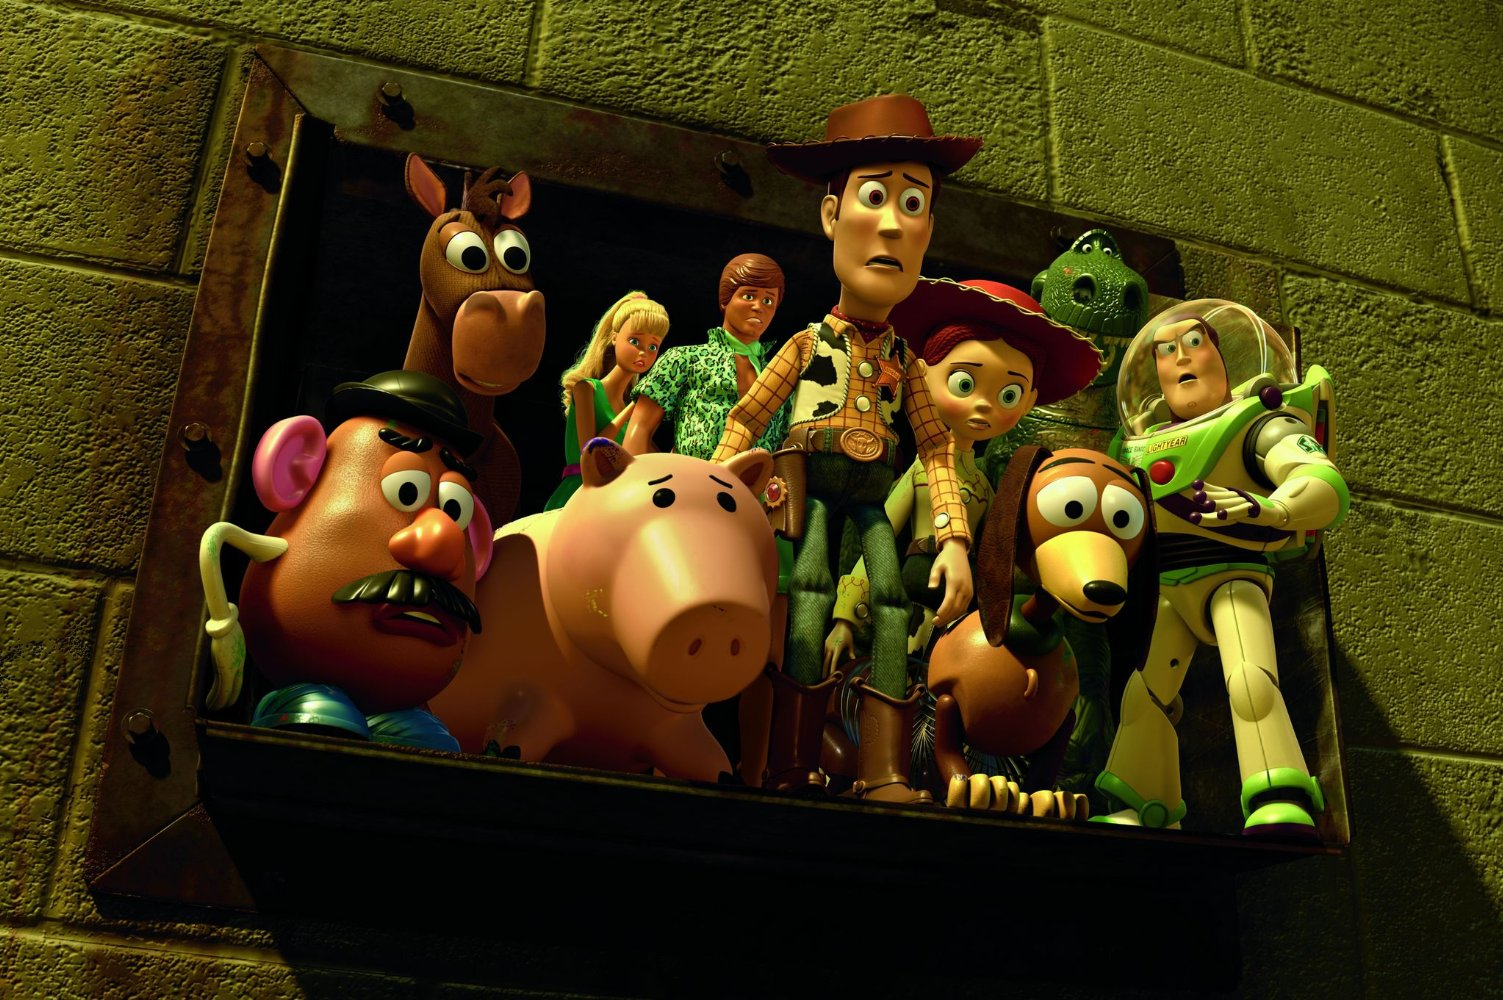 toy story 3 2010 watch online on 123movies